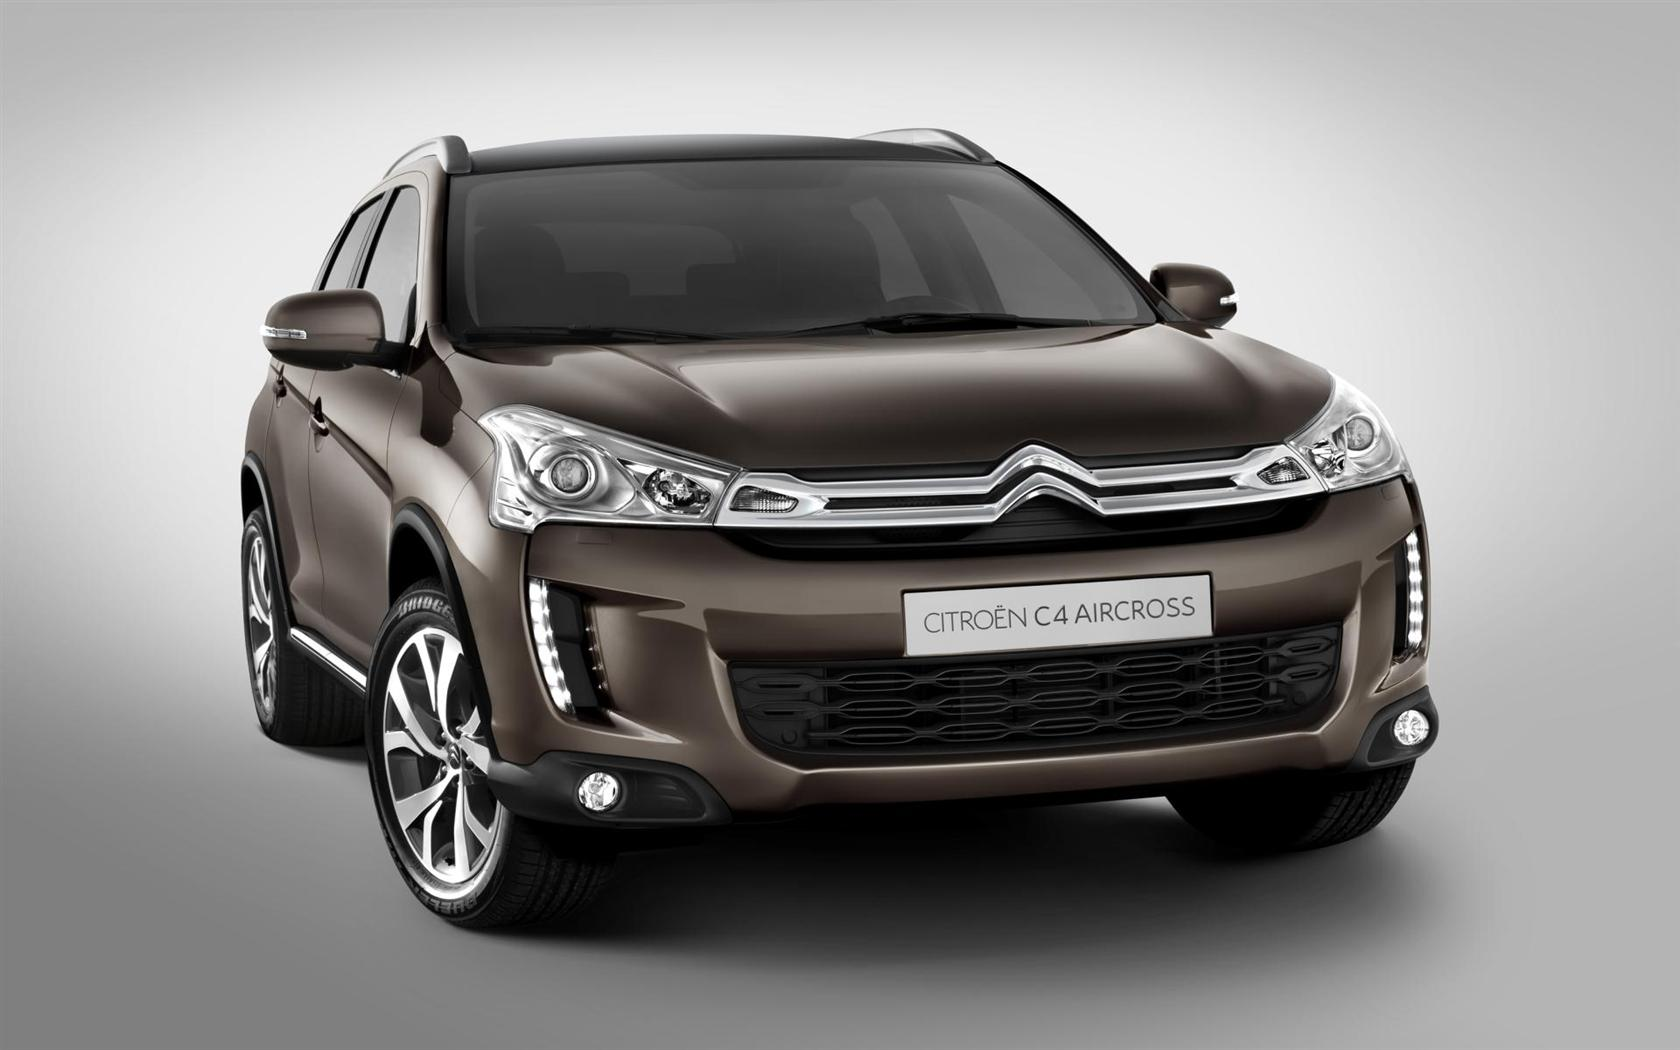 2012 Citroen C4 Aircross Image  Photo 12 Of 12